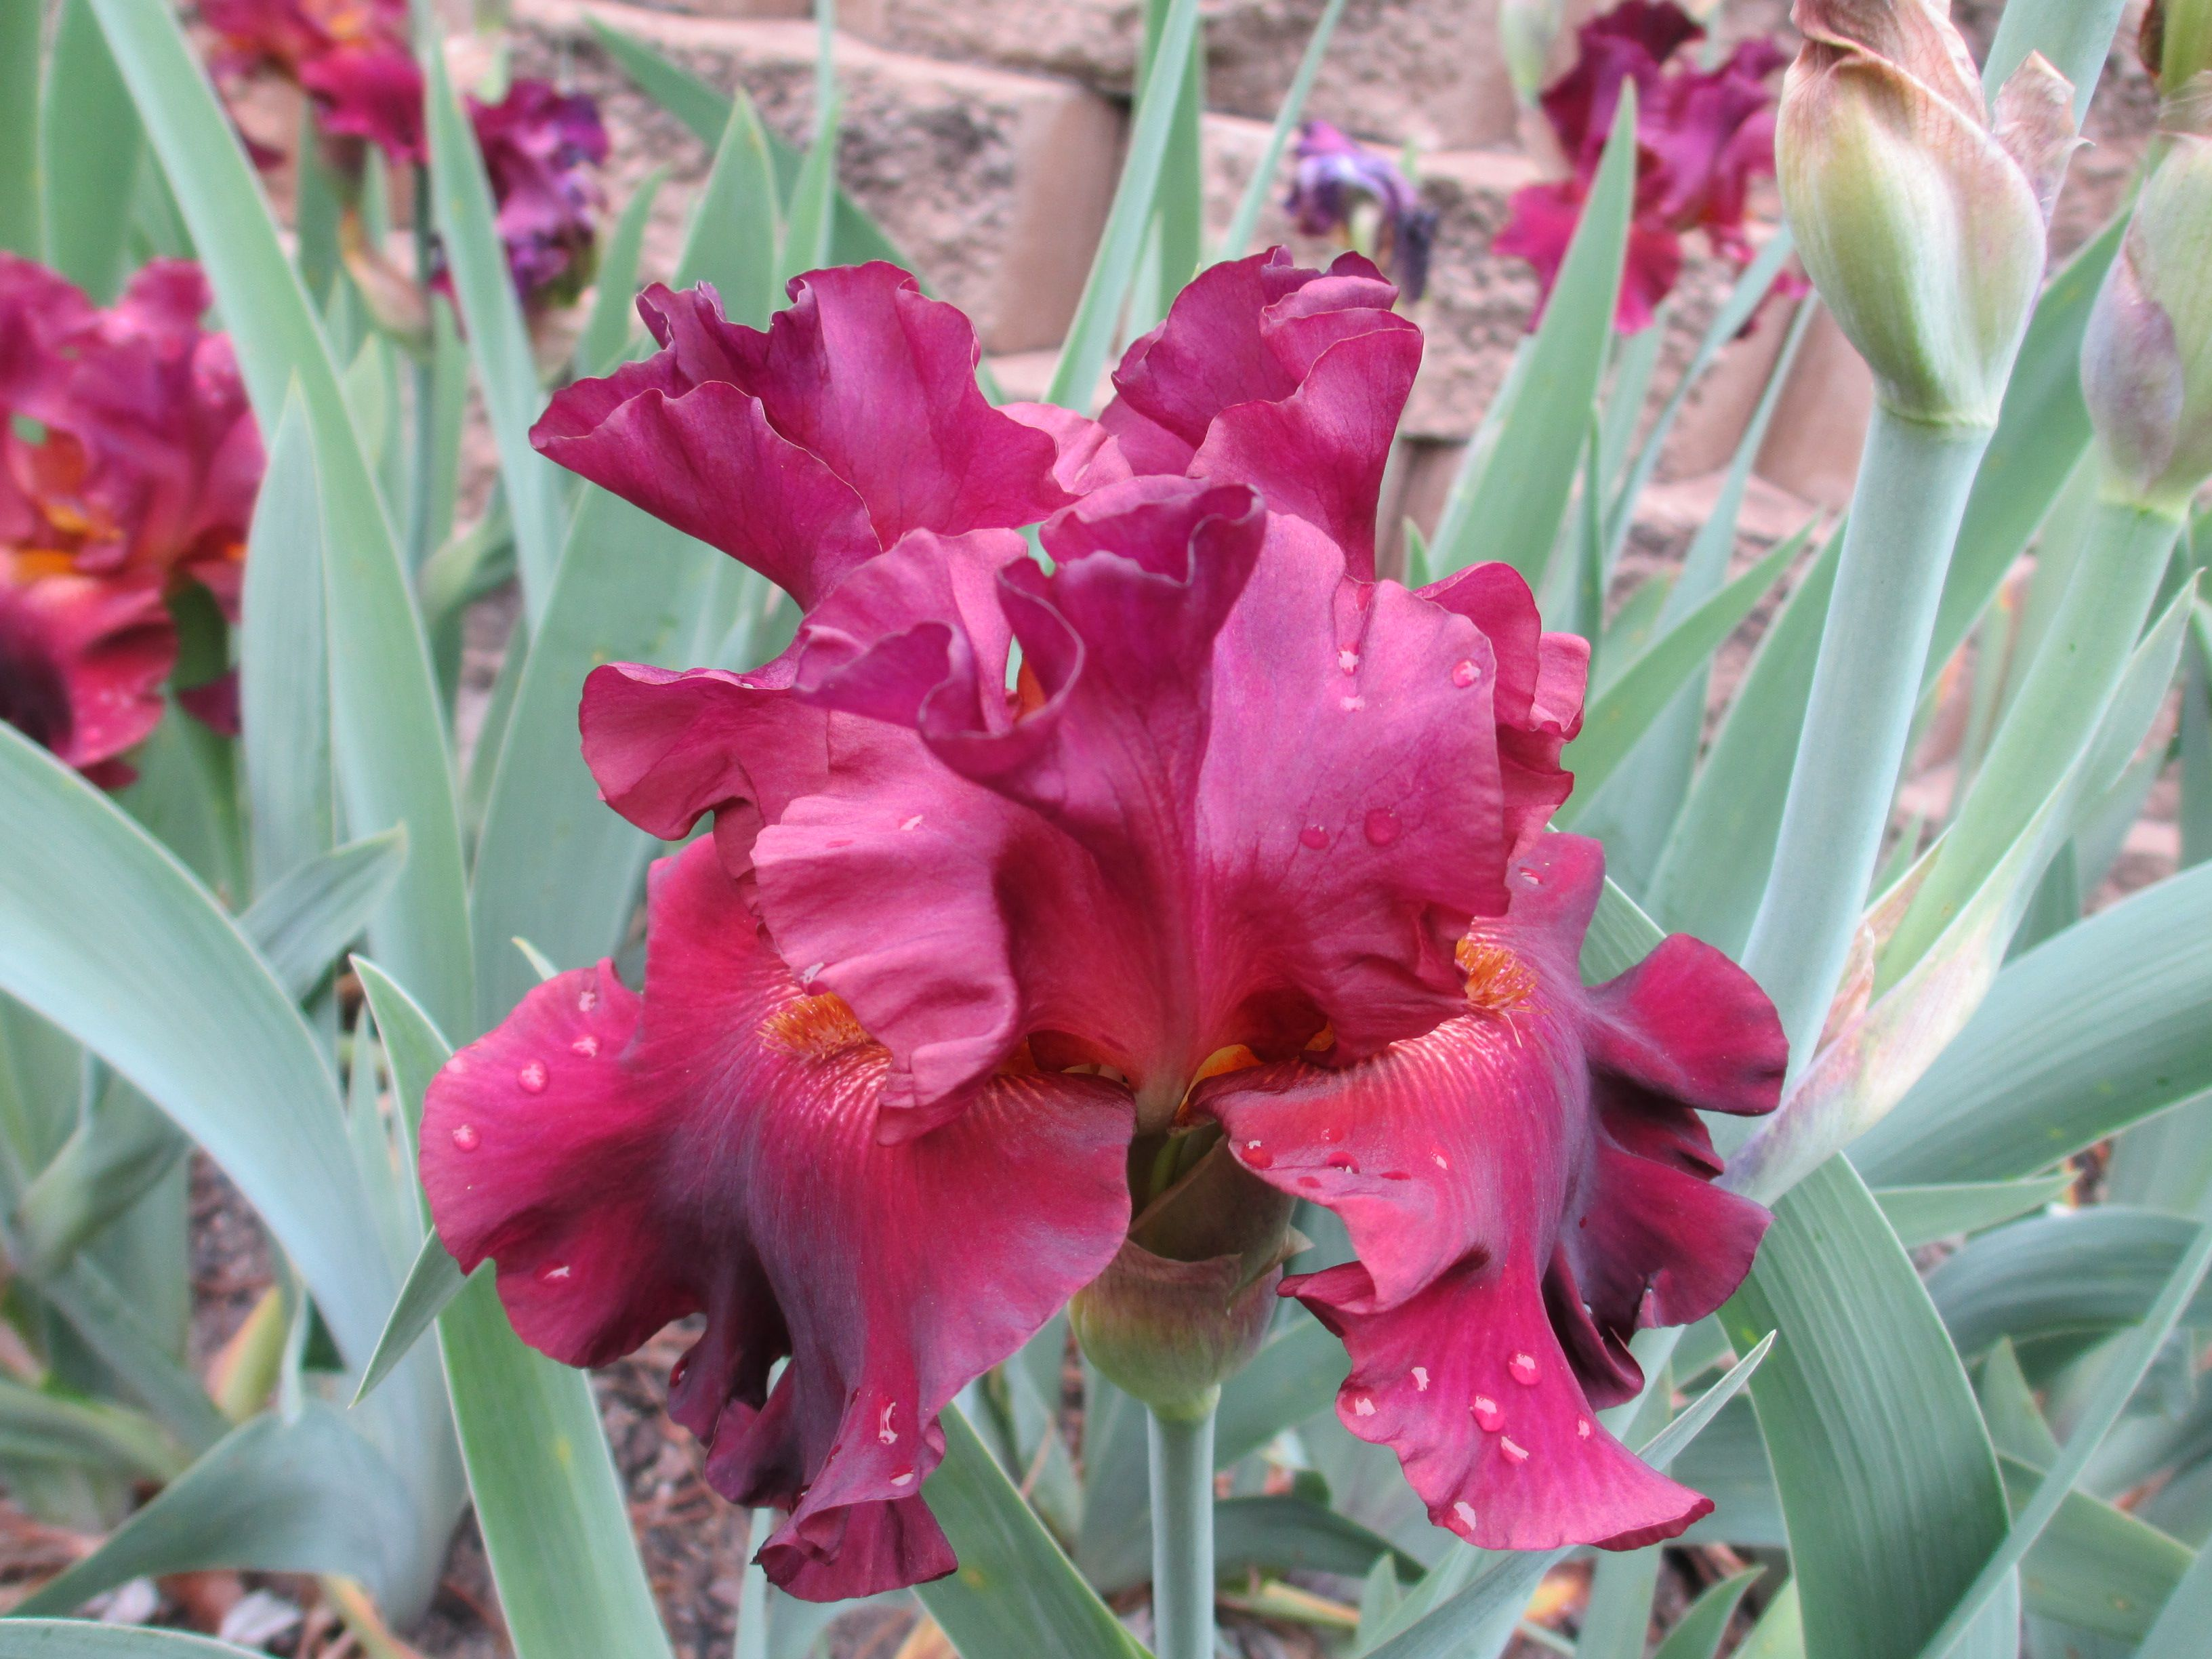 RIP CITY - BEARDED IRIS. Available for the first time this year. A rich carmine red that blooms early for us. Very good increase plus good branching and bud count too!  #beardediris